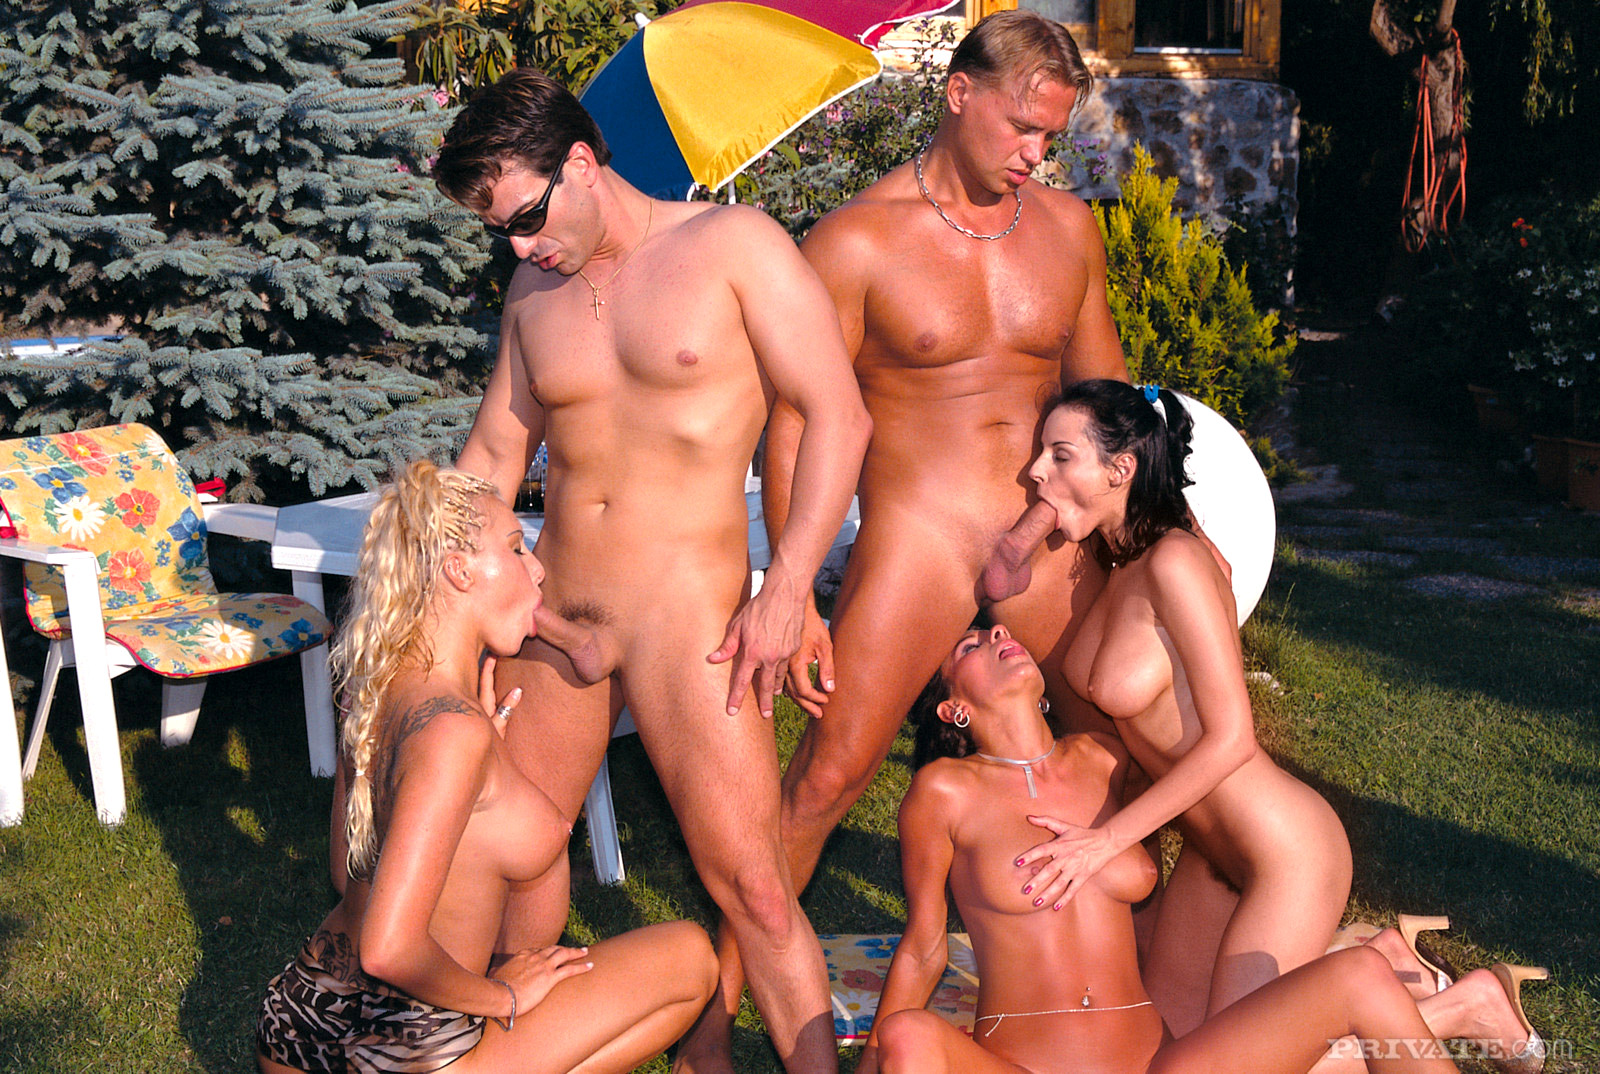 crazy-outdoor-sex-party-pics